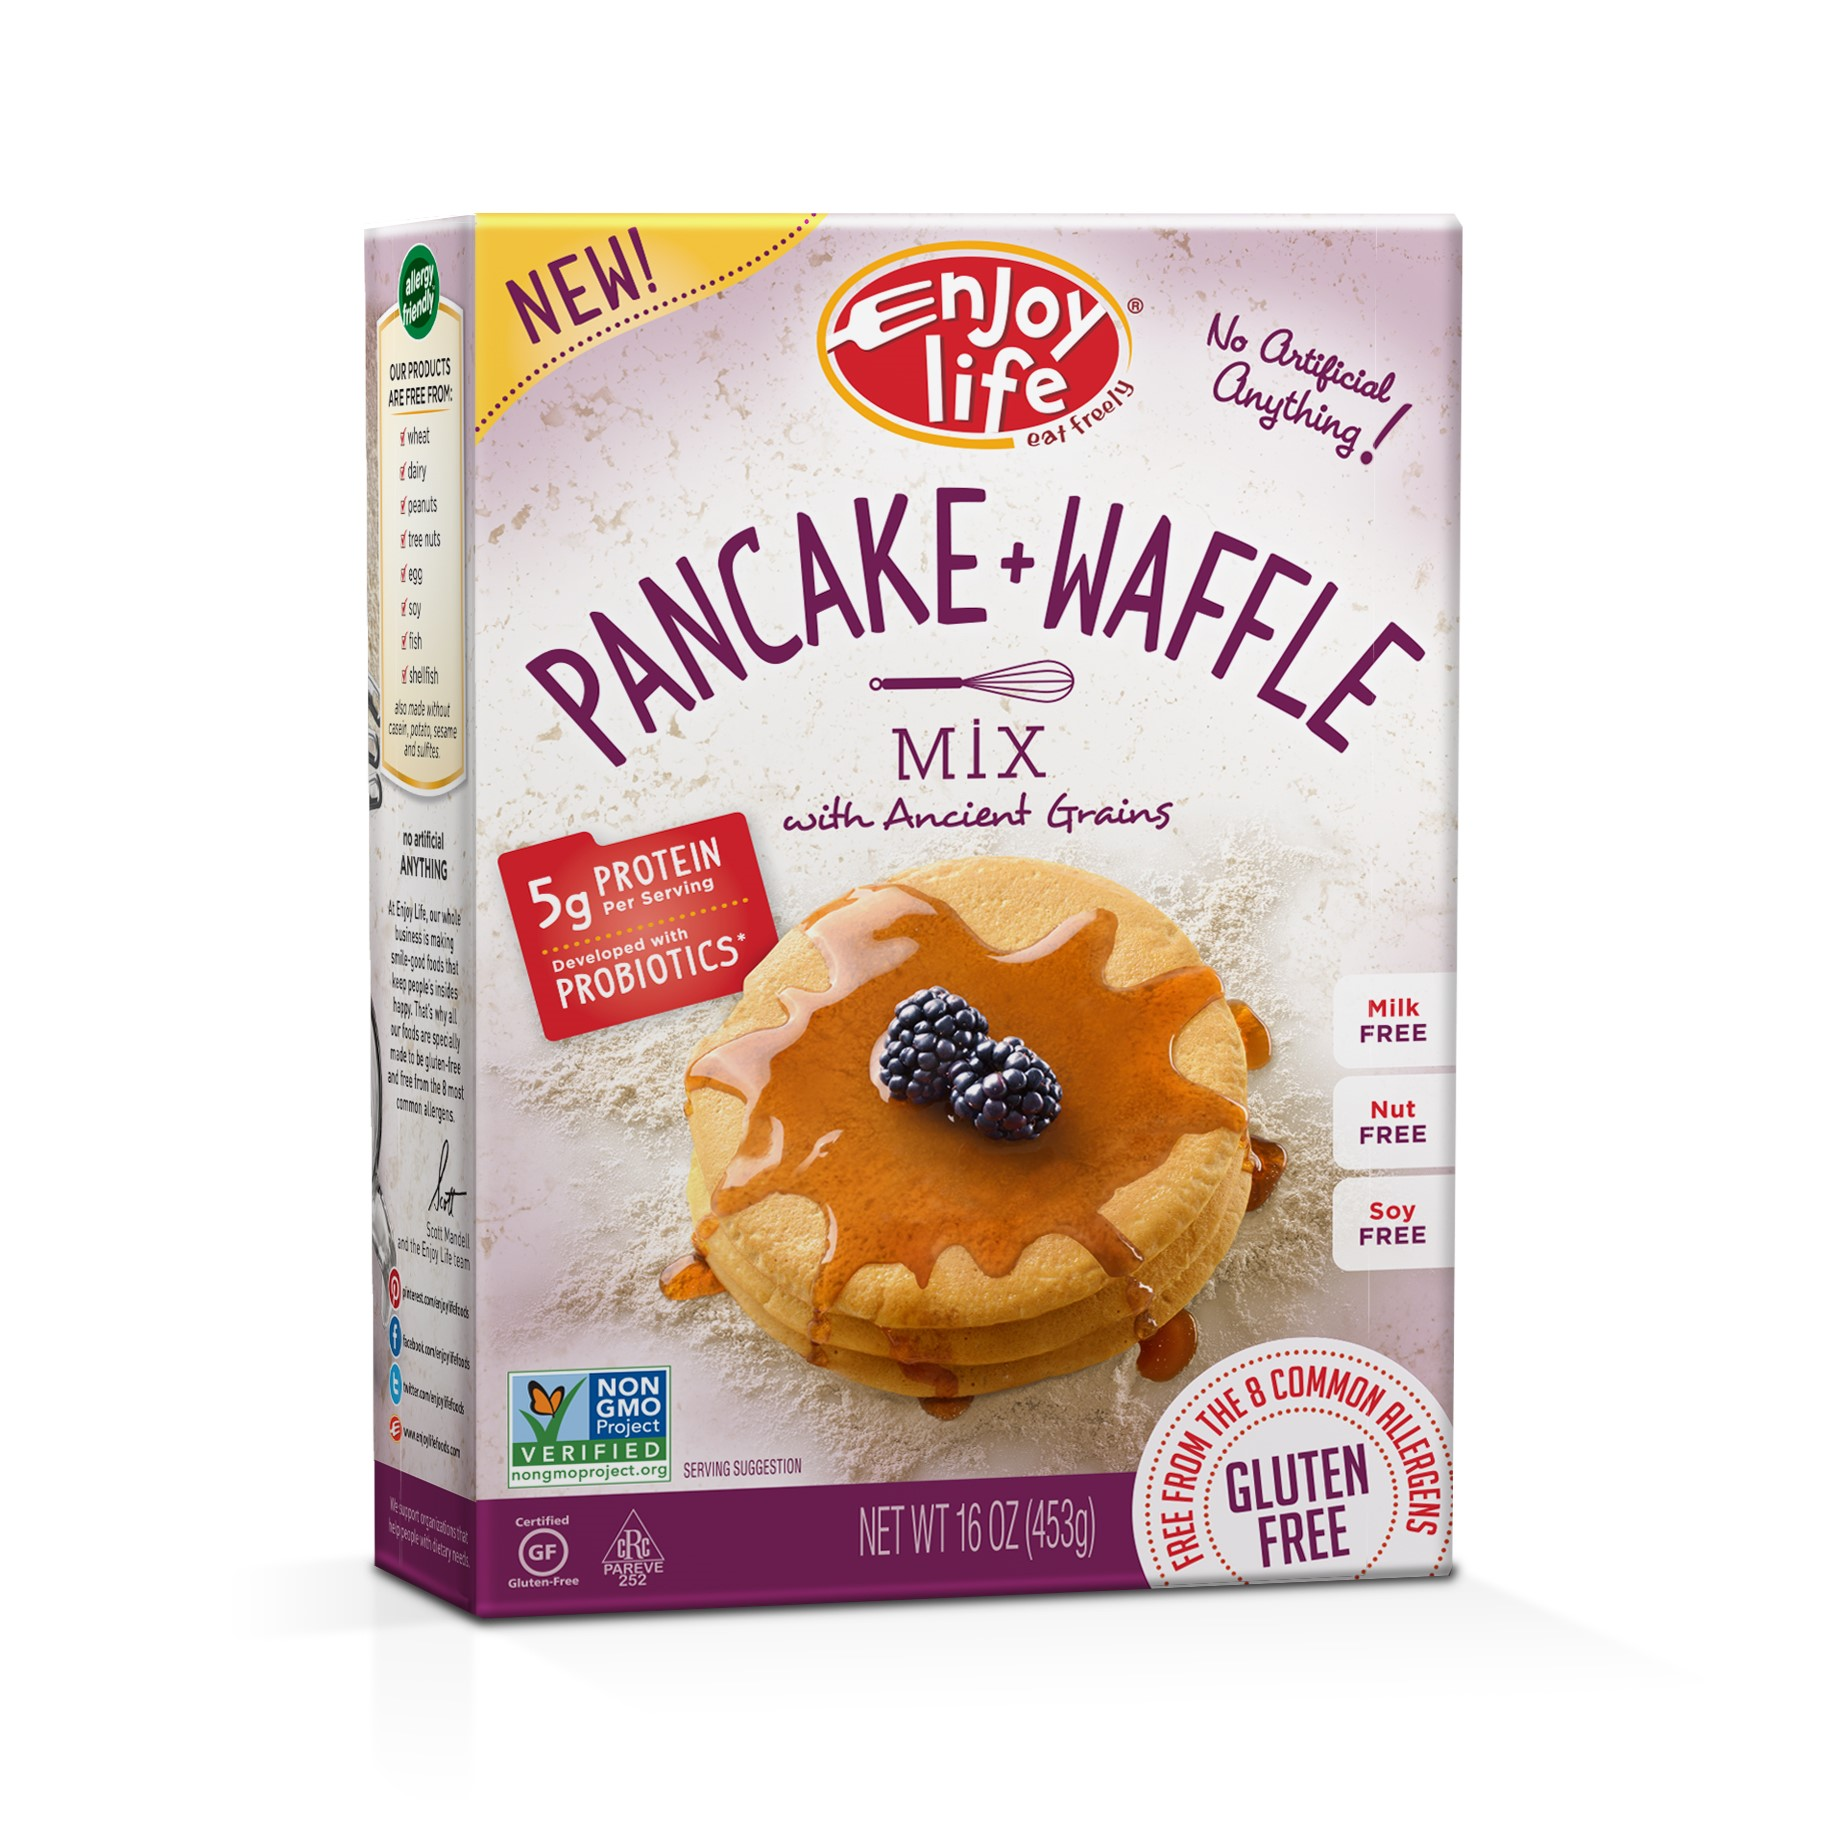 Enjoy Life Foods Gluten Free, Allergy Friendly Pancake + Waffle Mix, 16 oz, 1 ct